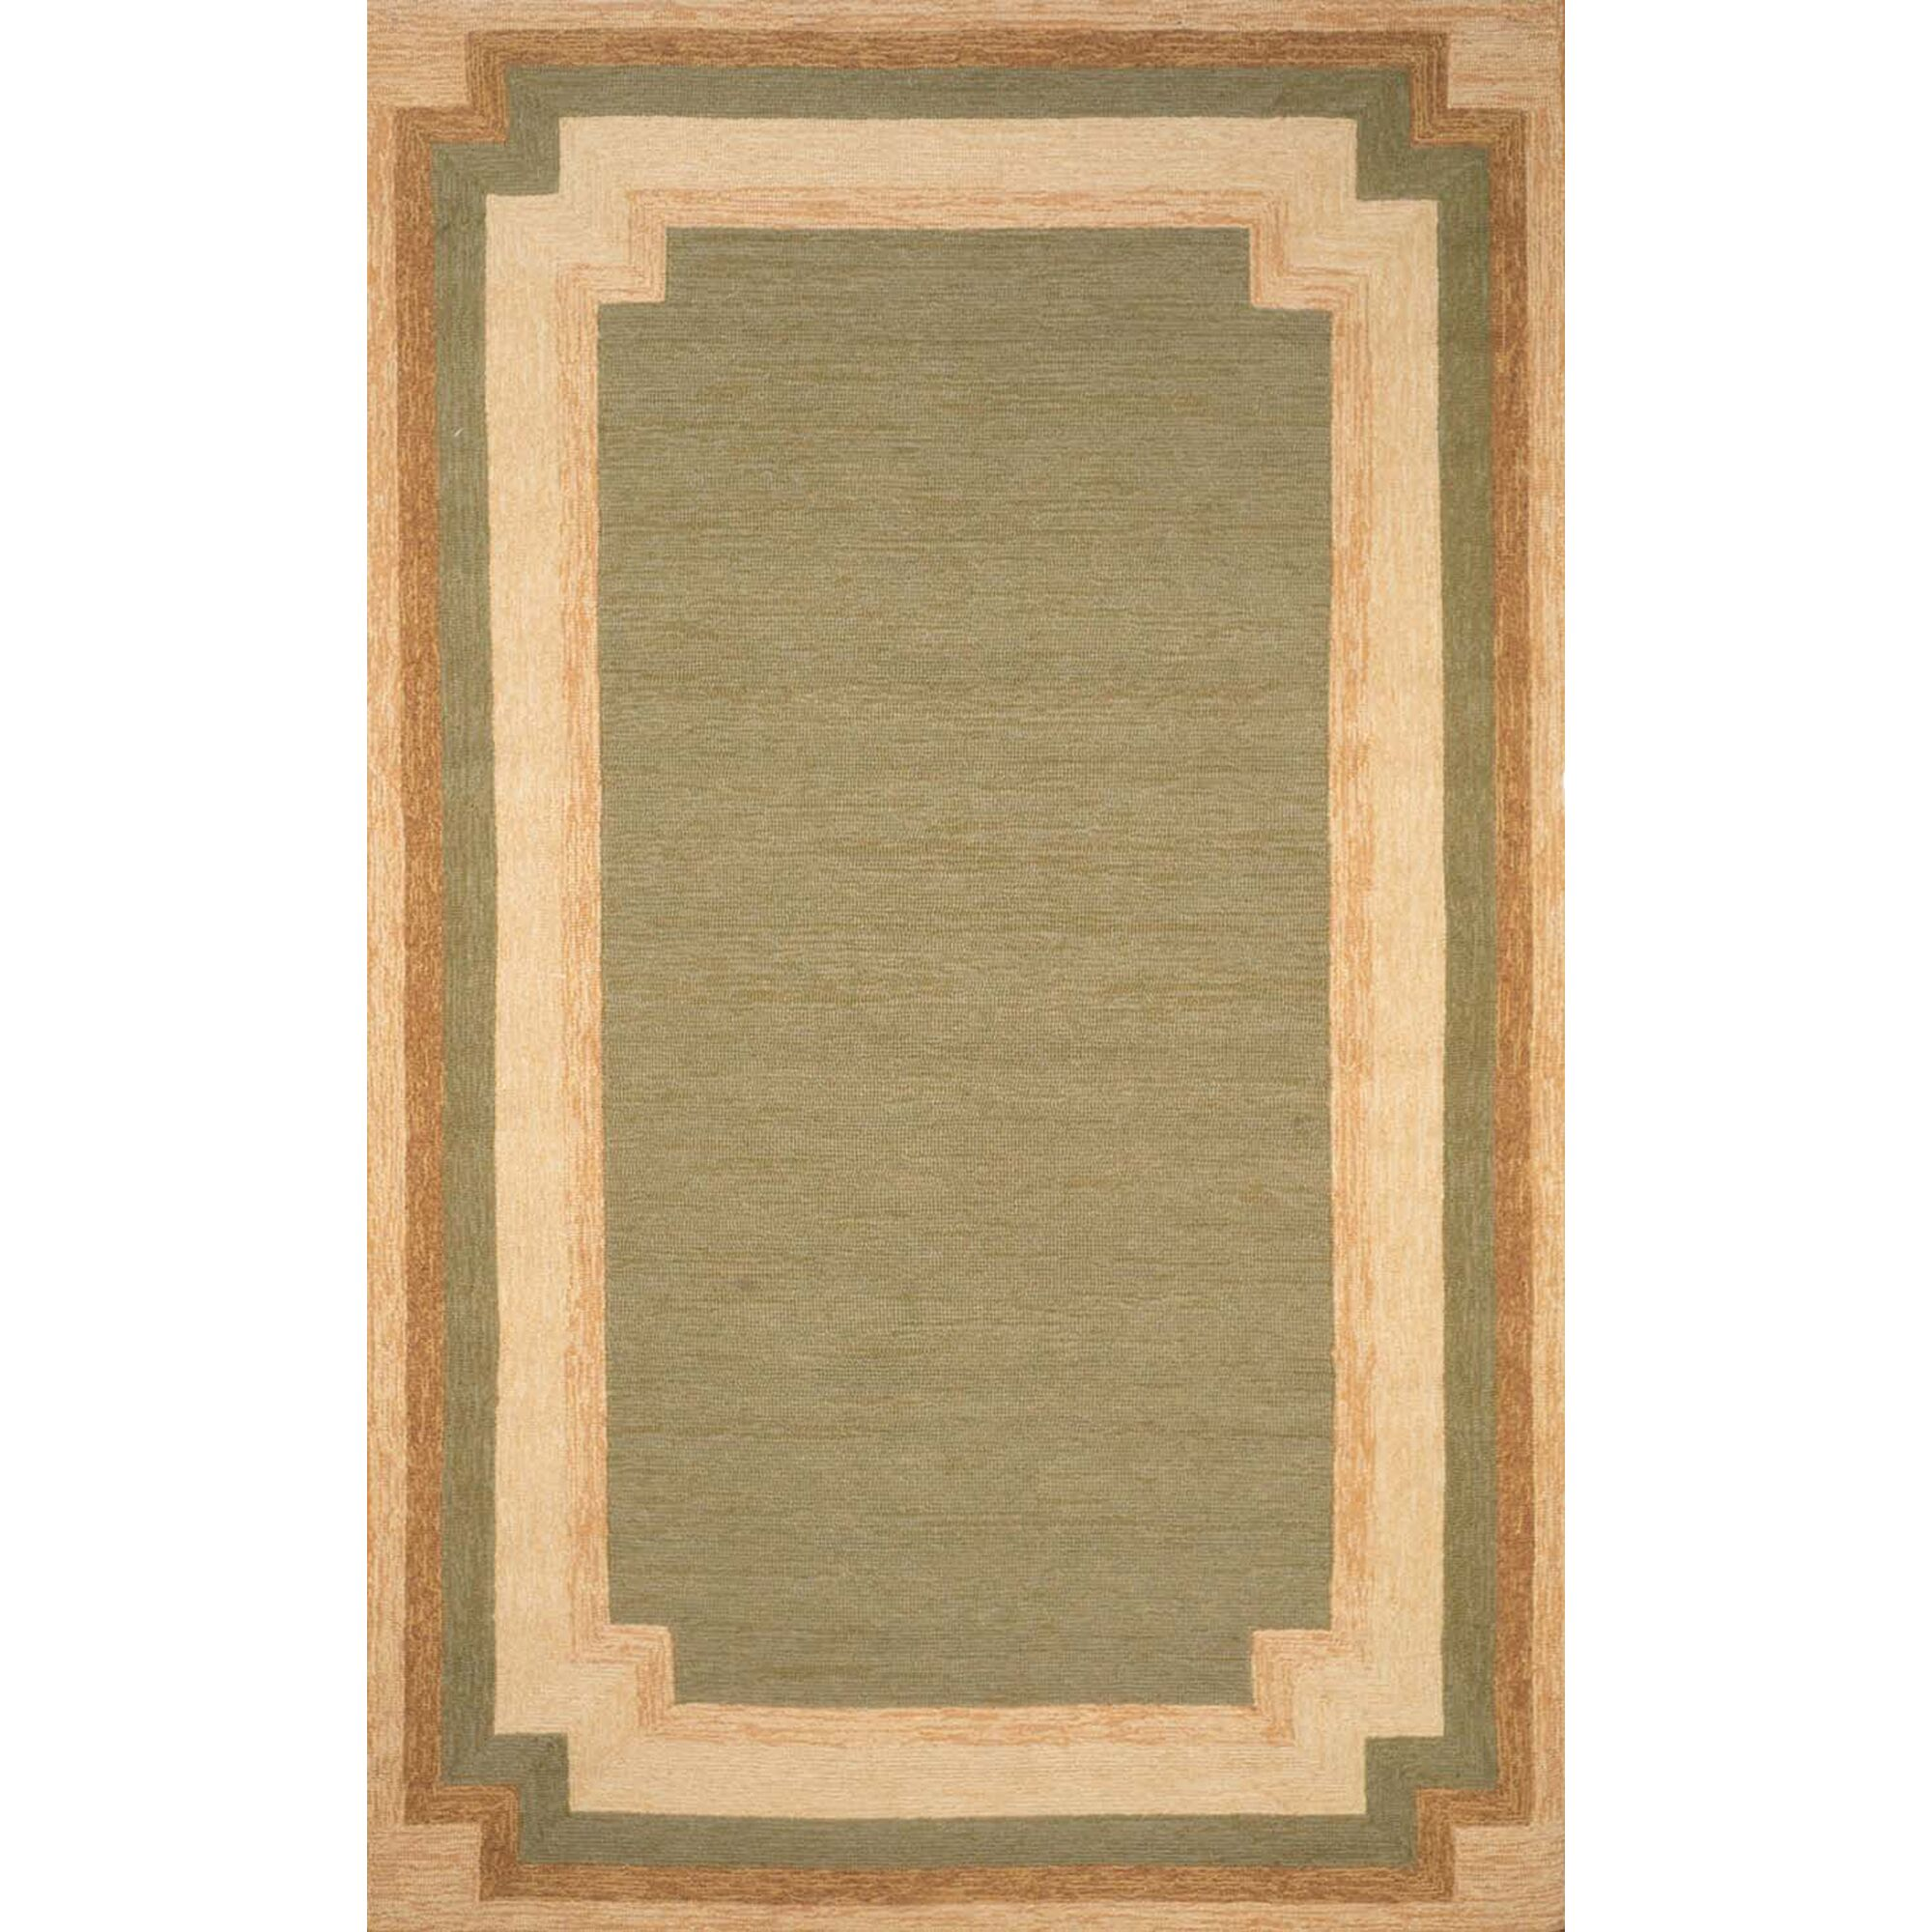 Dazey Hand-Tufted Green/Beige Indoor/Outdoor Area Rug Rug Size: Runner 2' x 8'